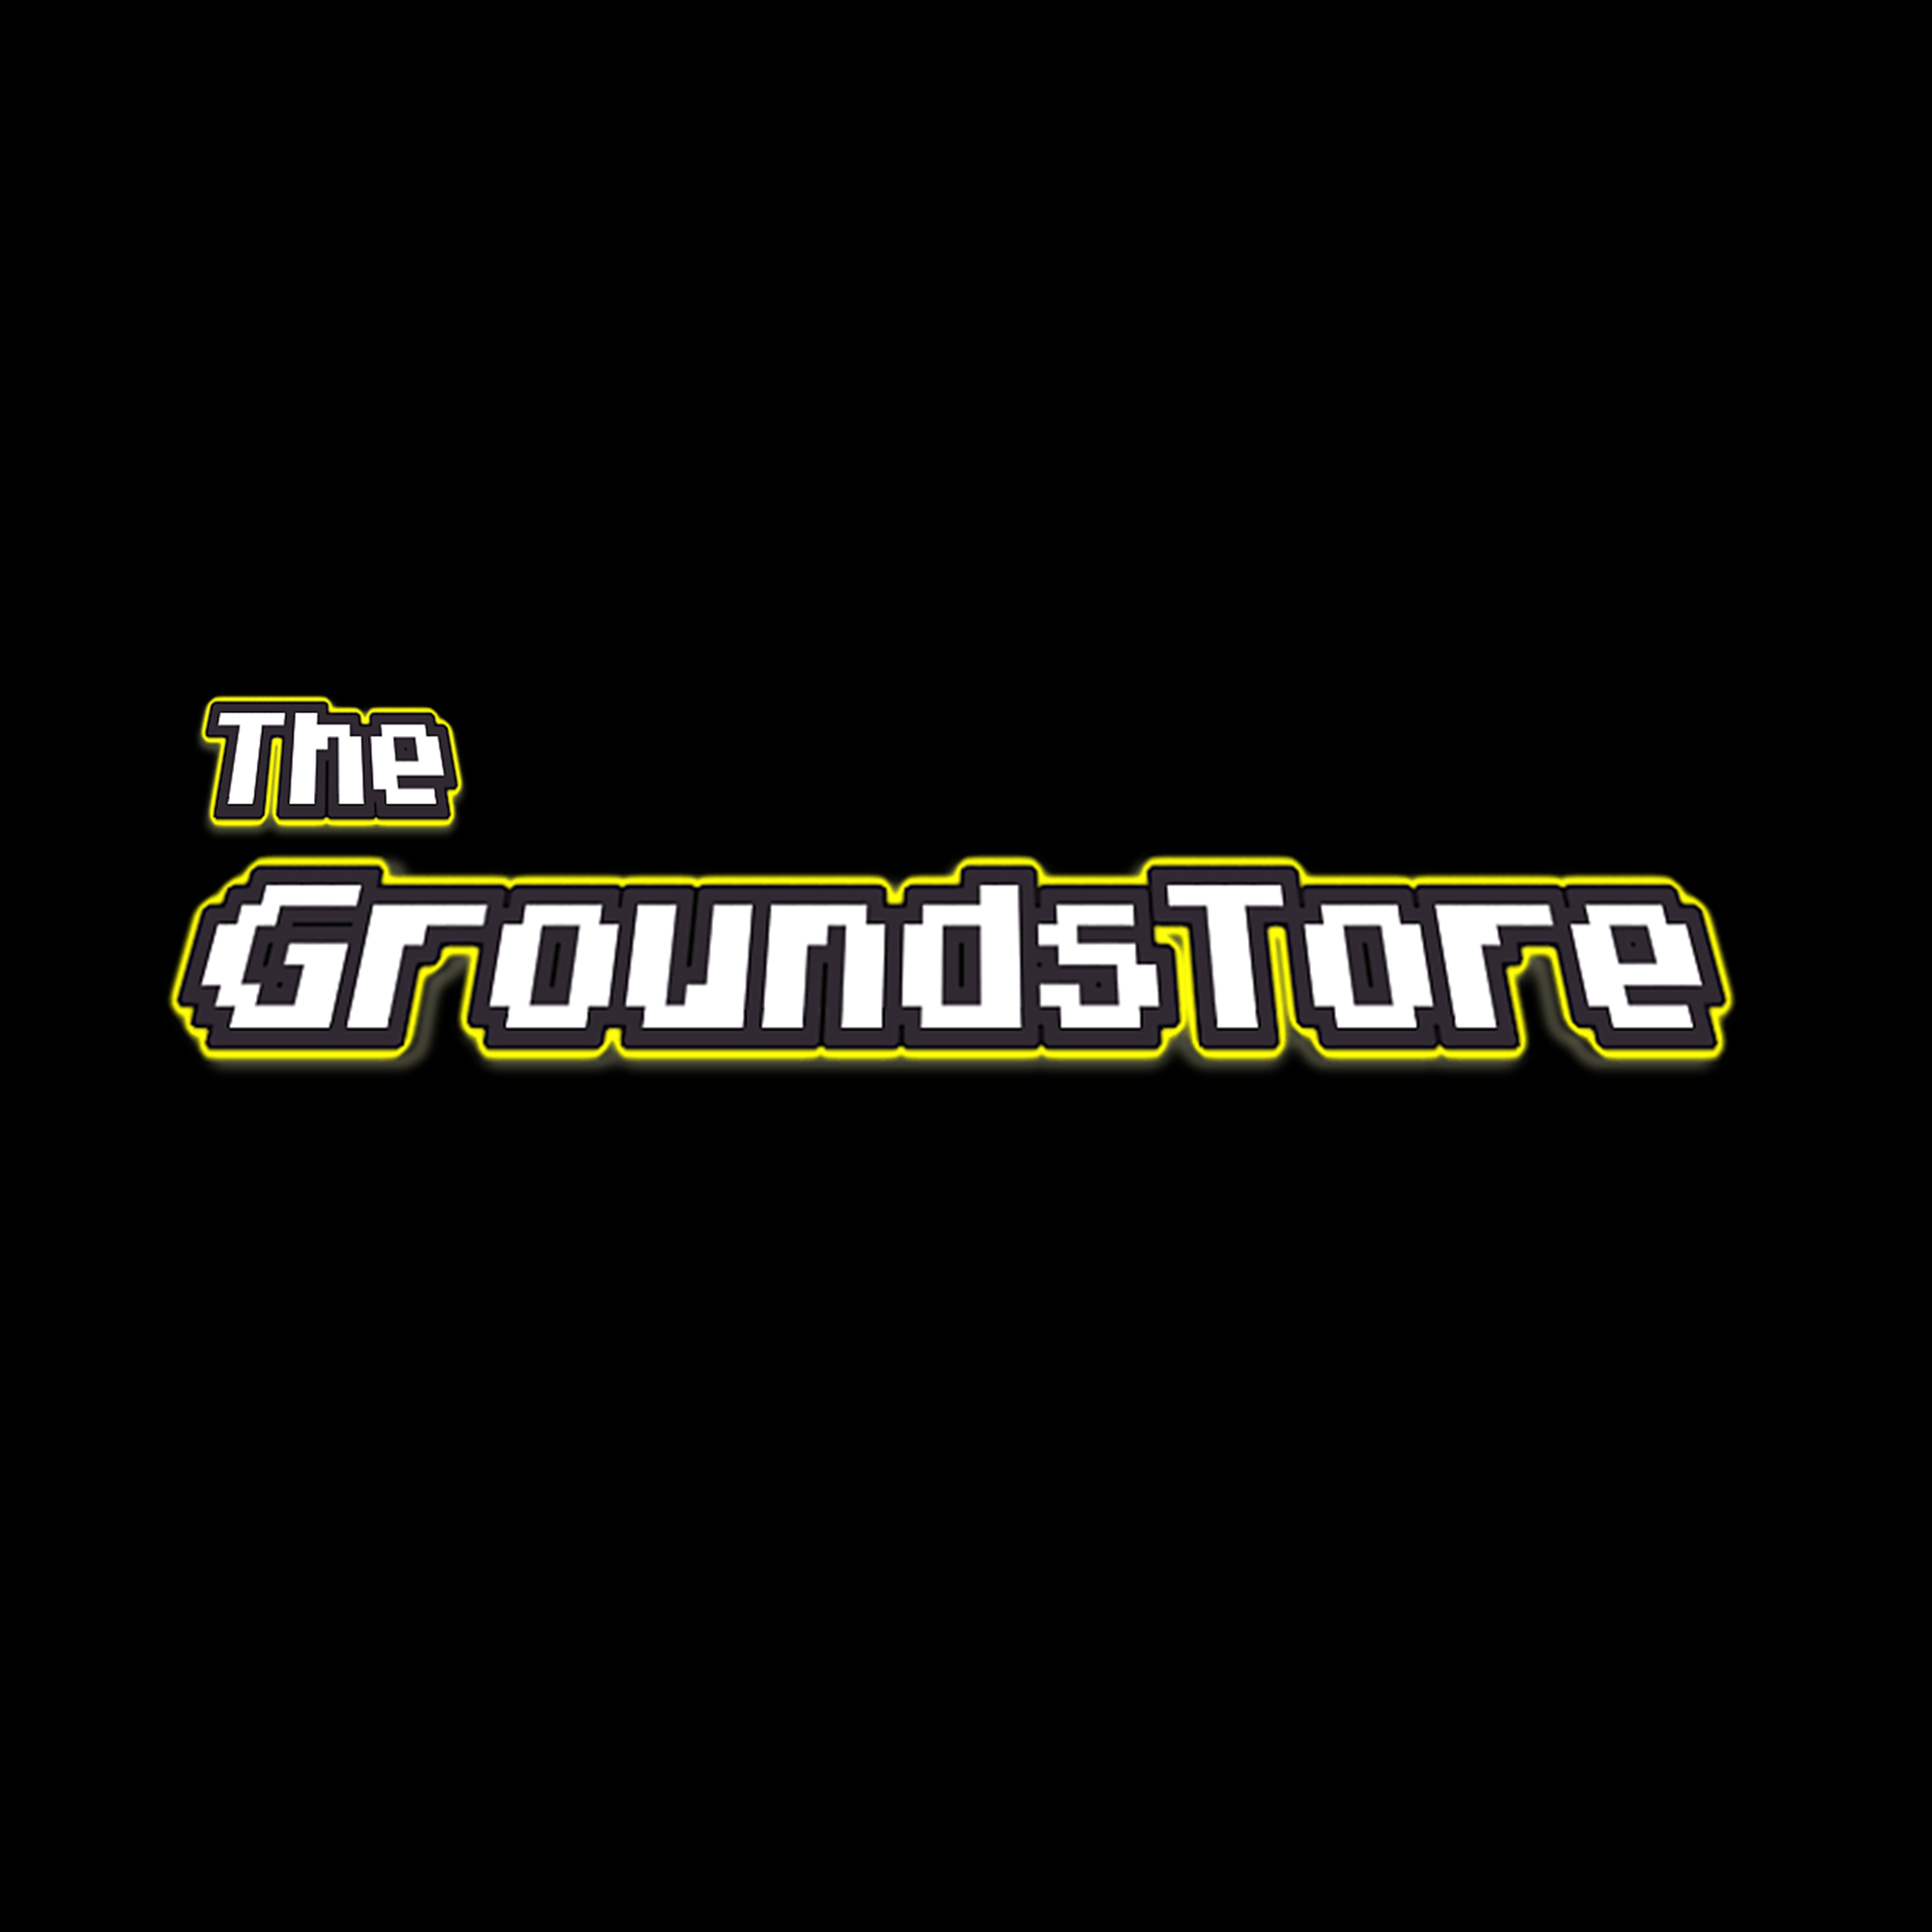 The Groundstore